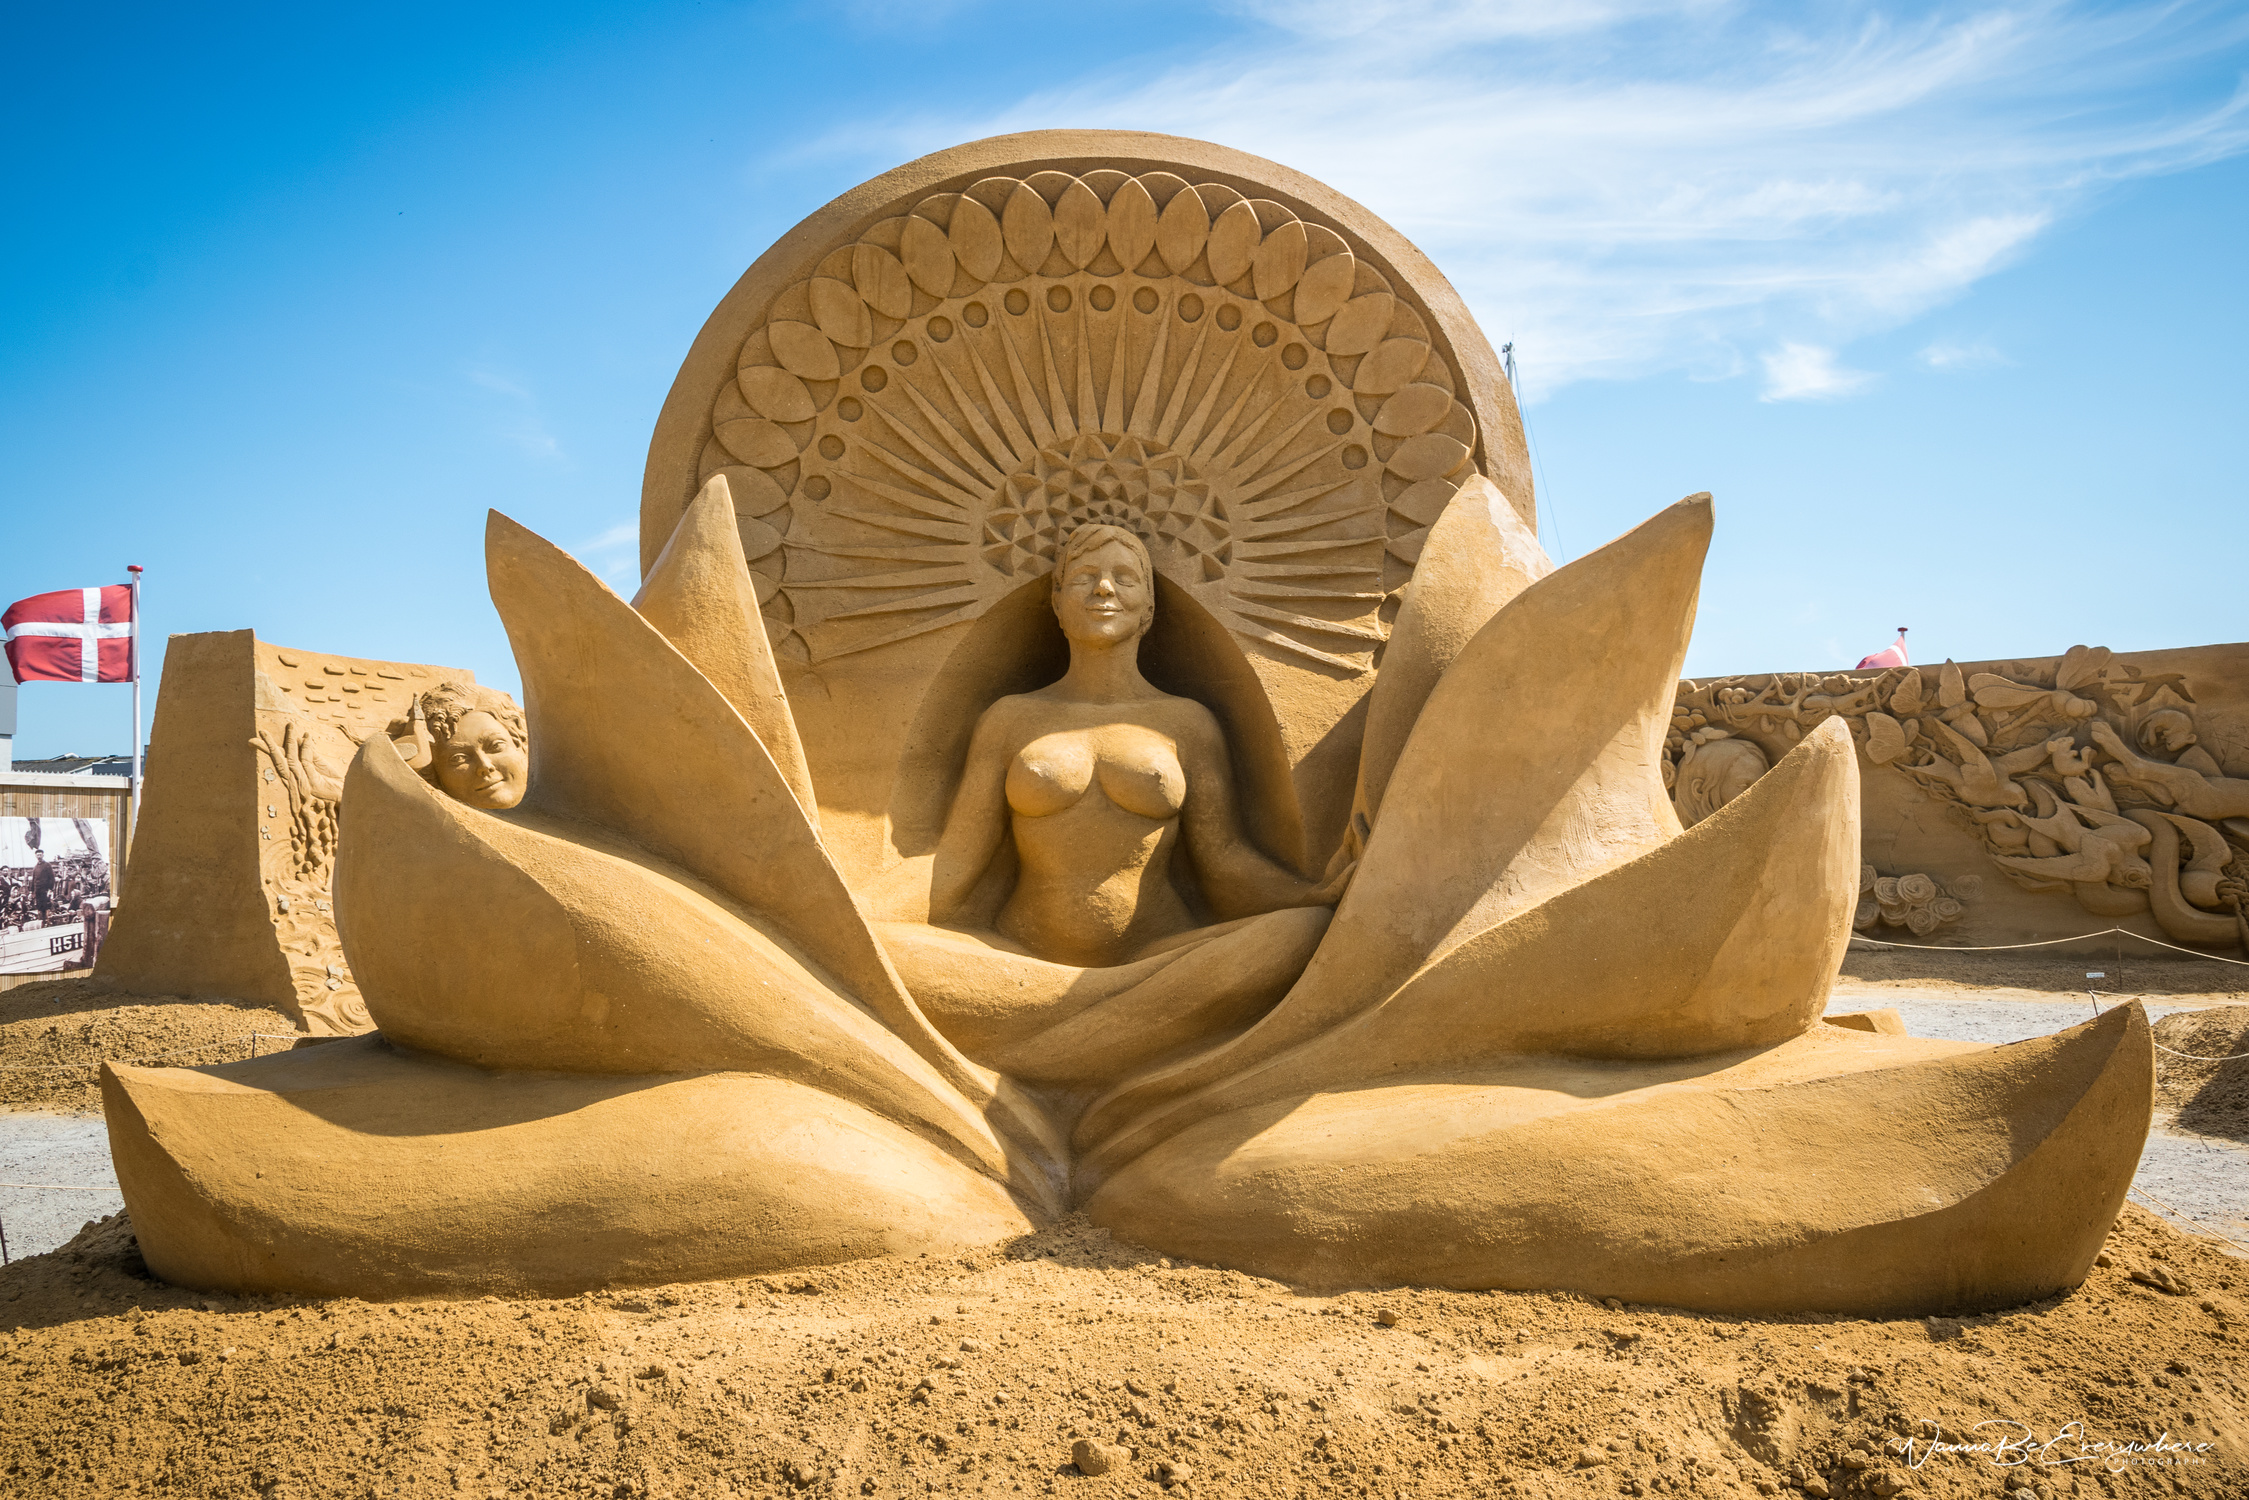 Hundested Sand Sculpture Festival in Denmark